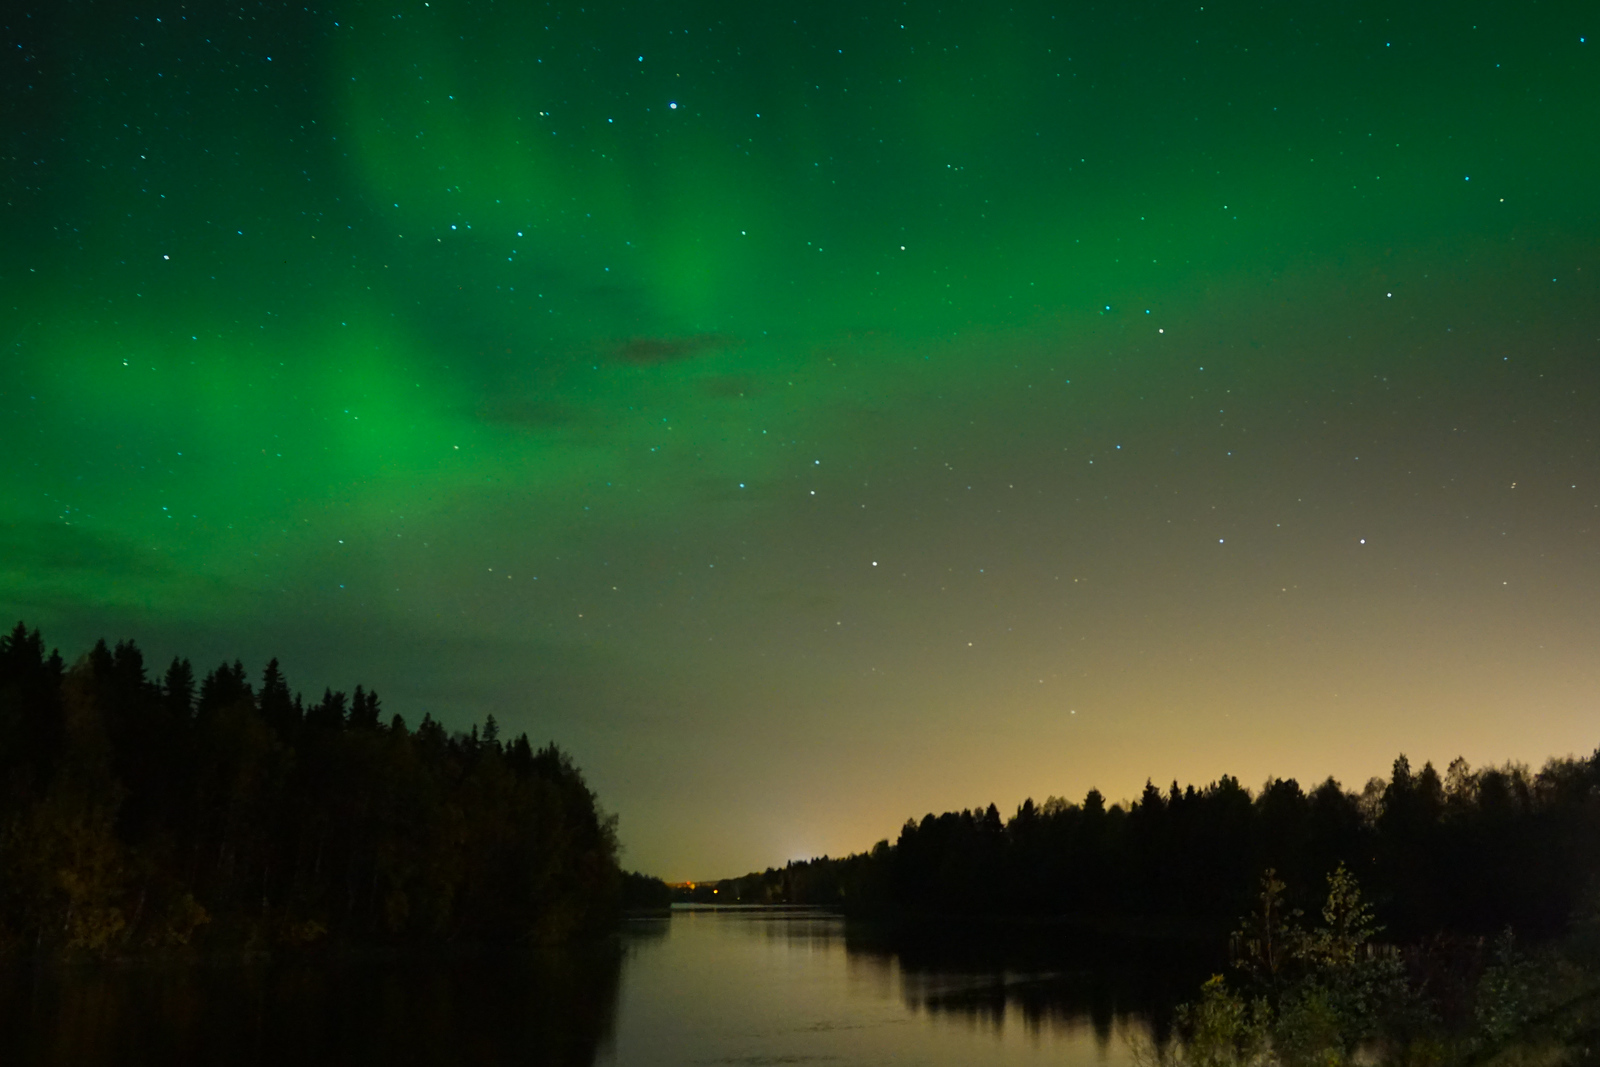 The 10 Best Places to See the Northern Lights - Sweden